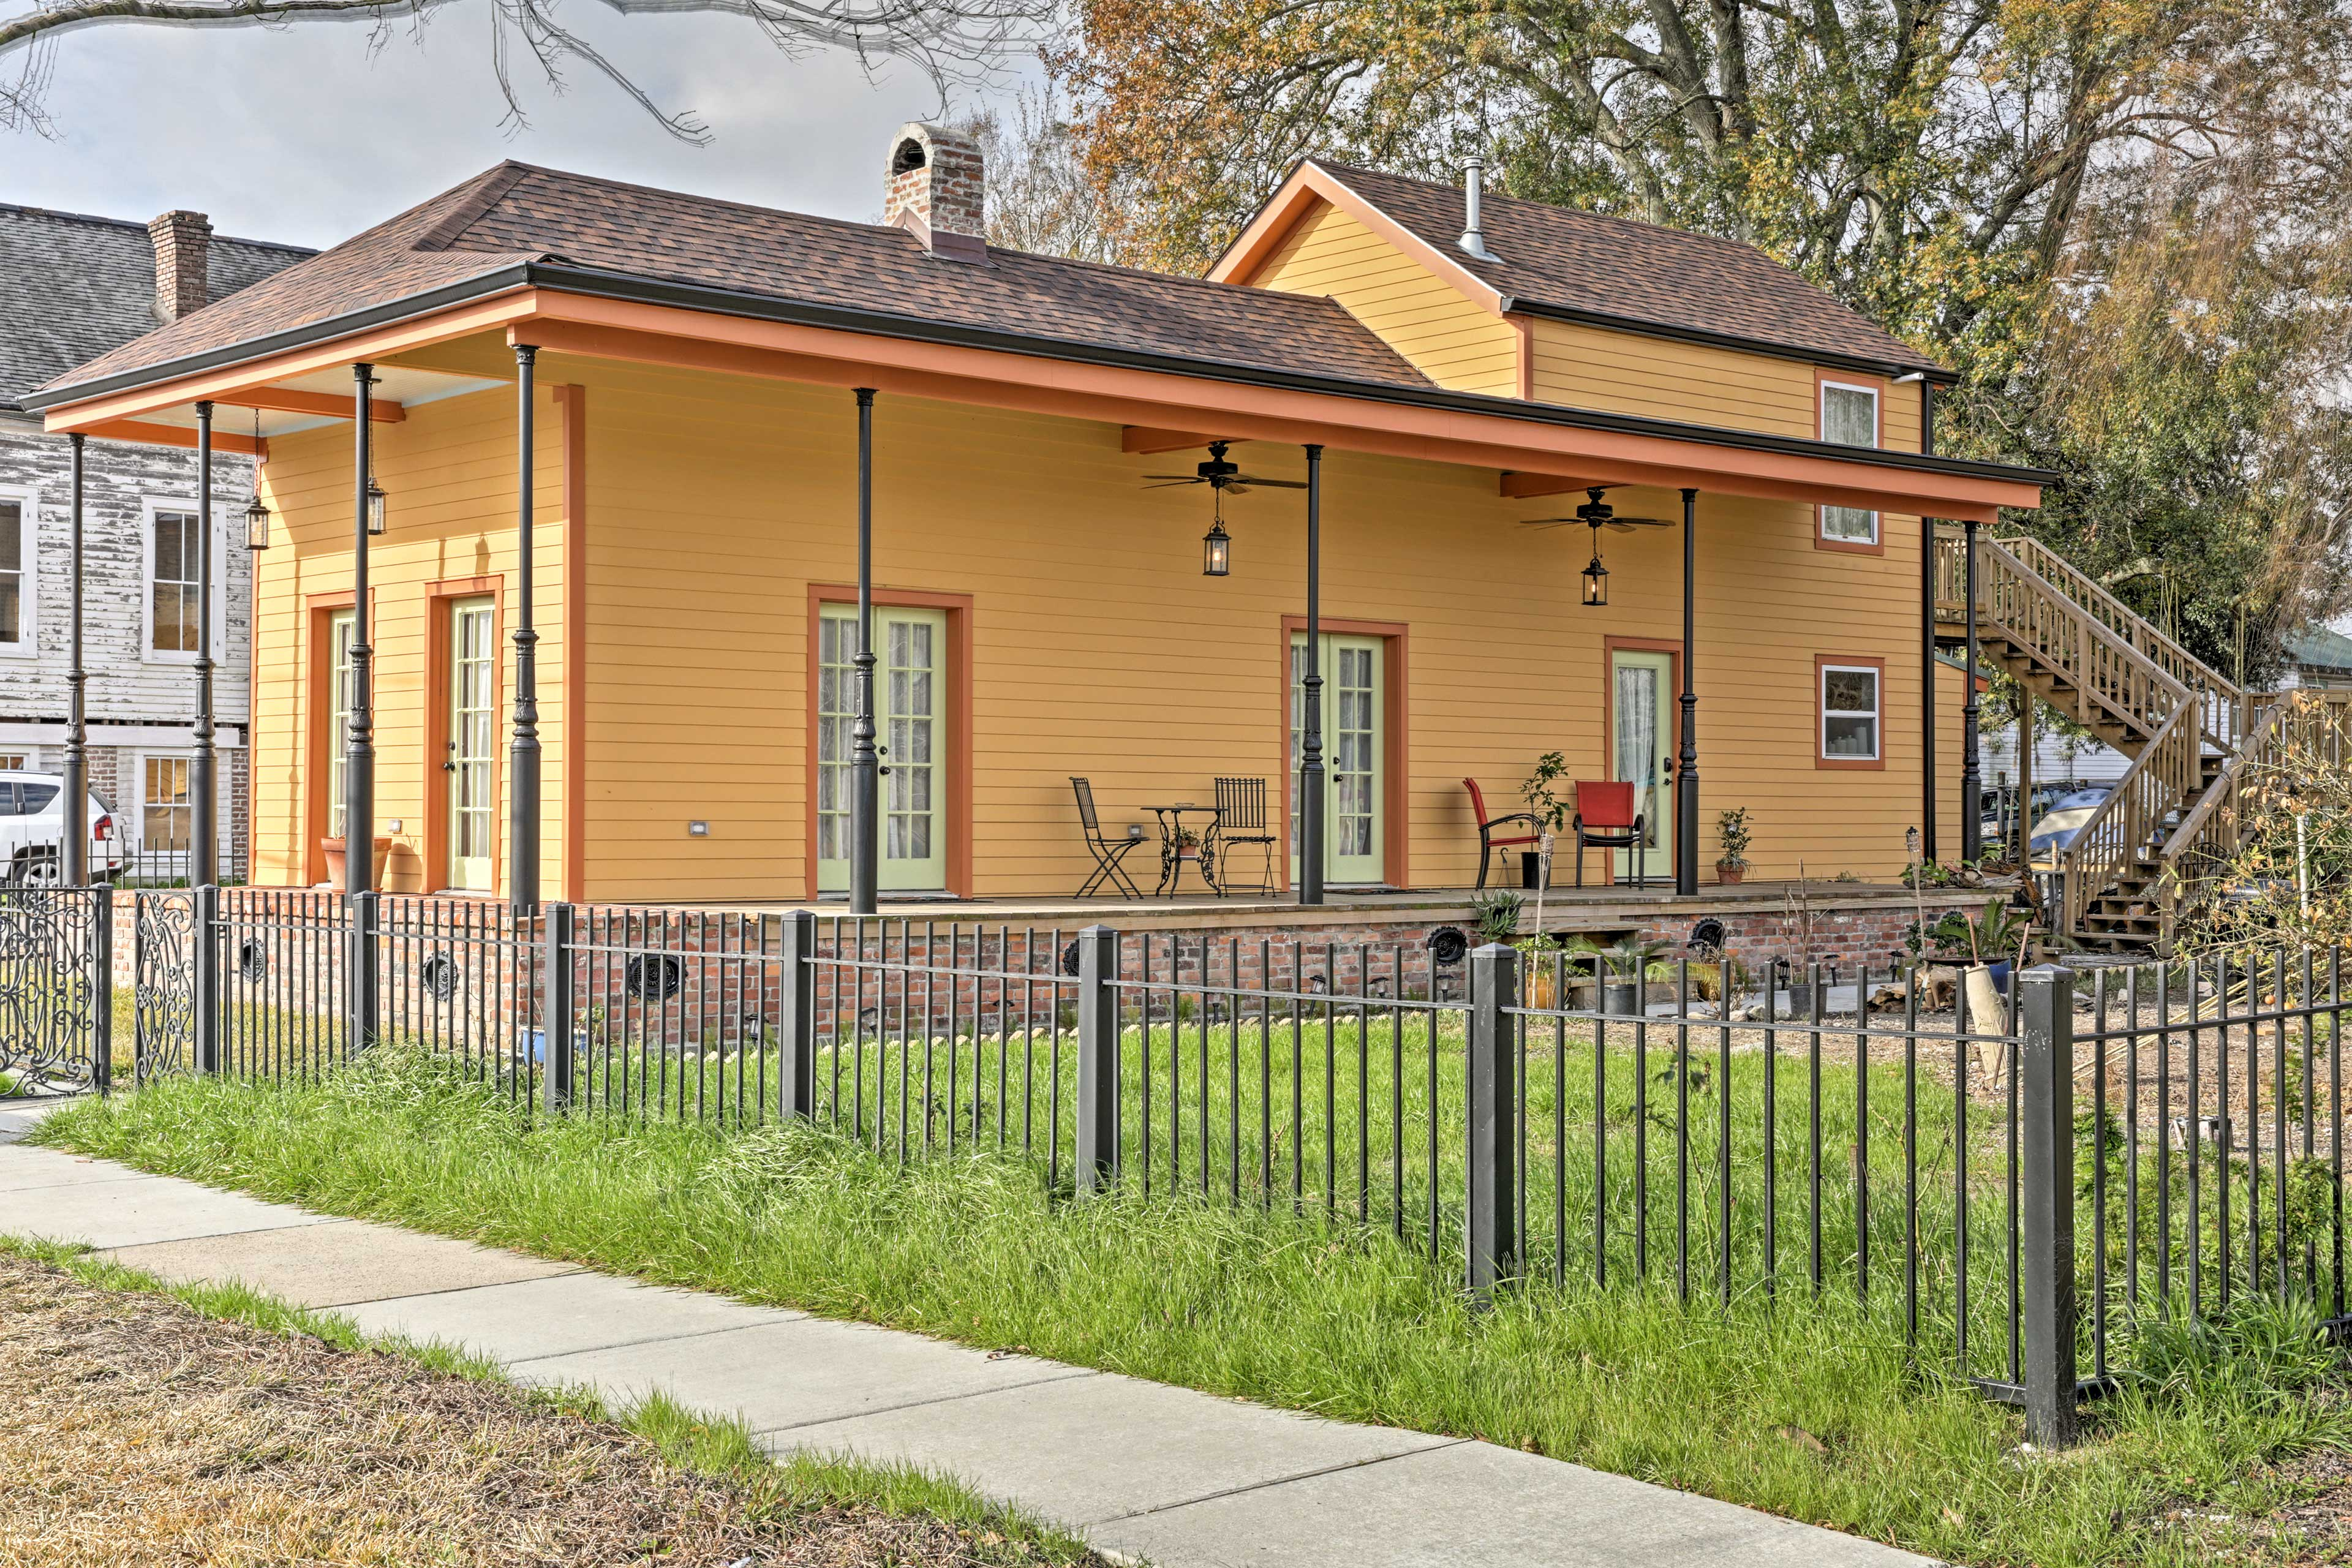 This vacation rental home for 5 is located minutes from NOLA's top attractions!